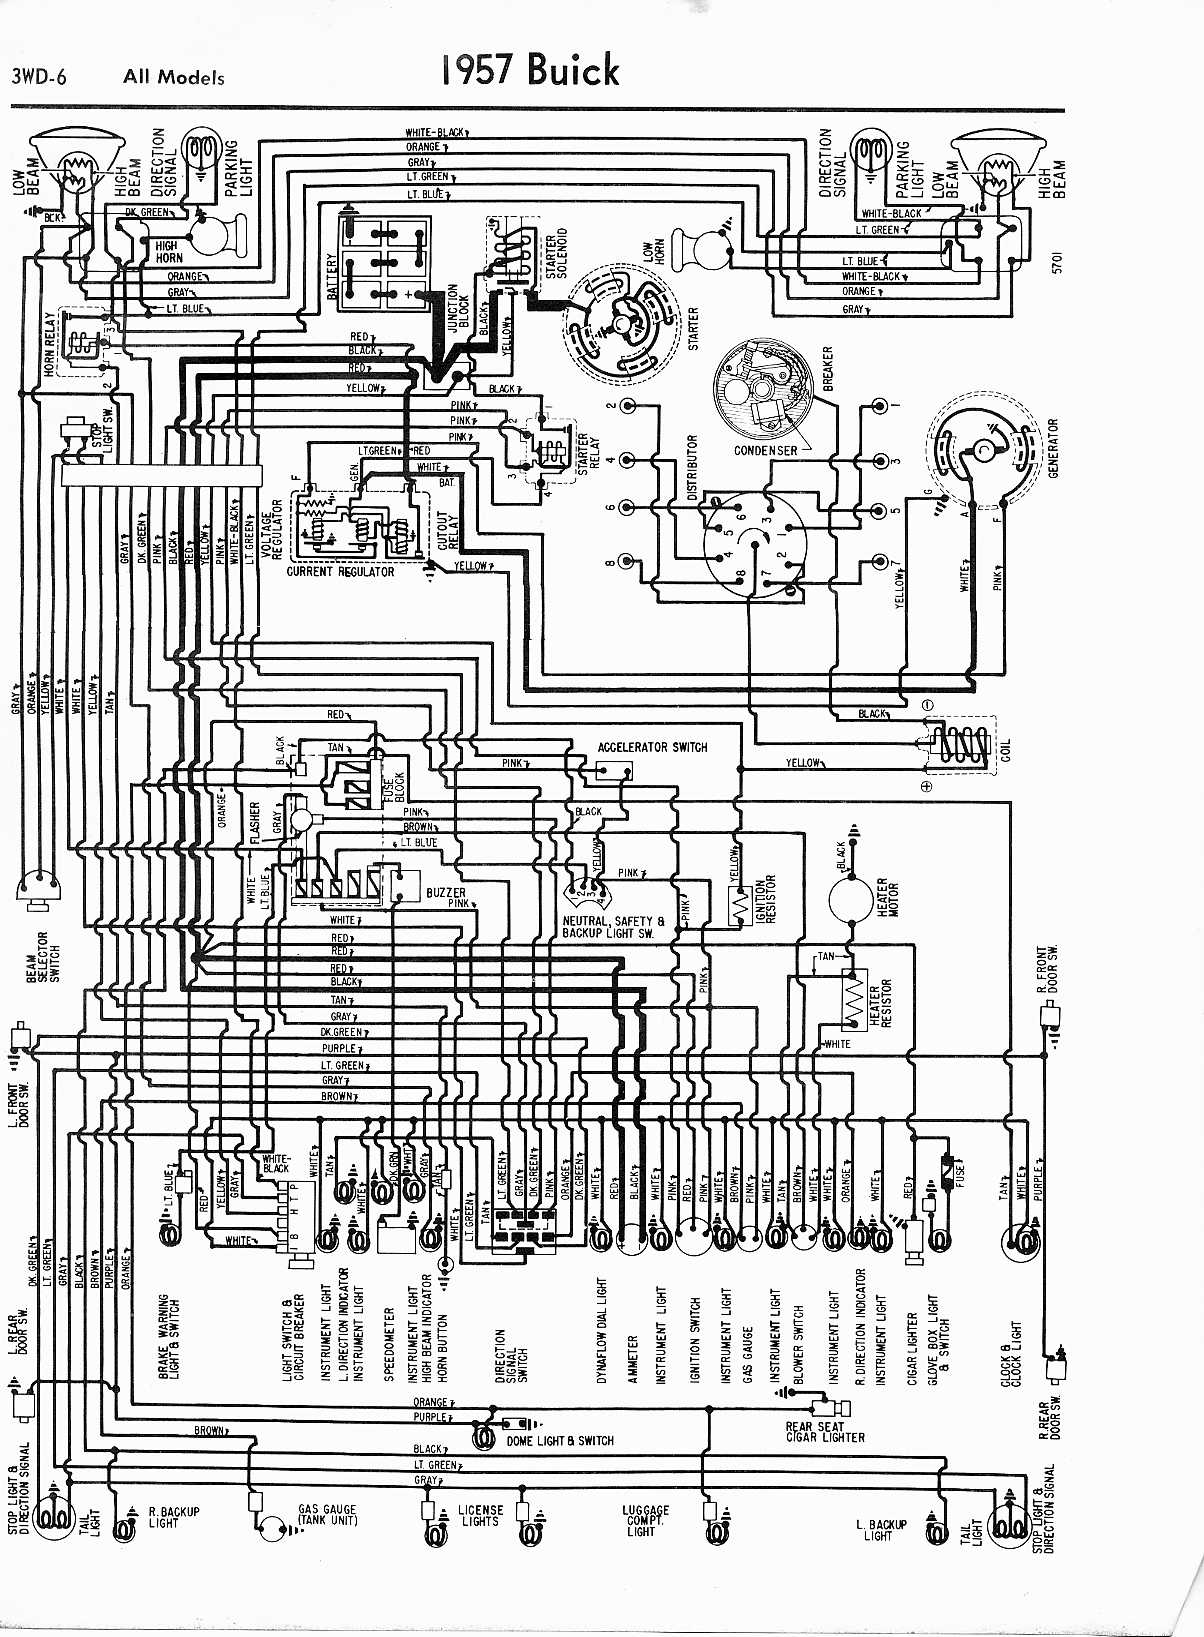 buick riviera wiring to battery diagram example electrical wiring rh cranejapan co Buick Century Wiring-Diagram Buick Century Wiring-Diagram